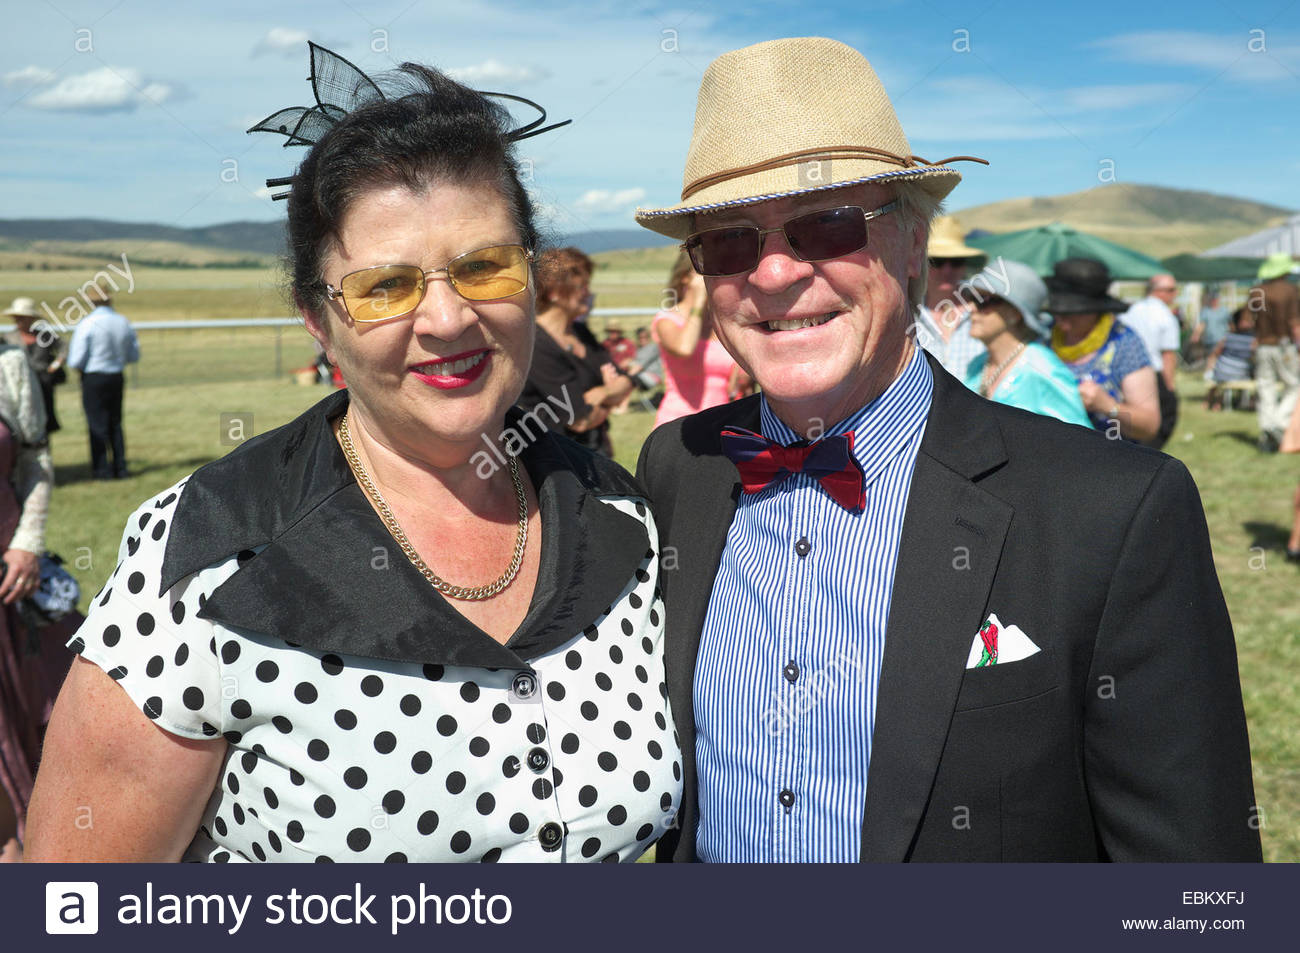 Spectators wearing vintage clothing, at the Adaminaby Races (horse racing), in the Snowy Mountains, New South Wales, - Stock Image